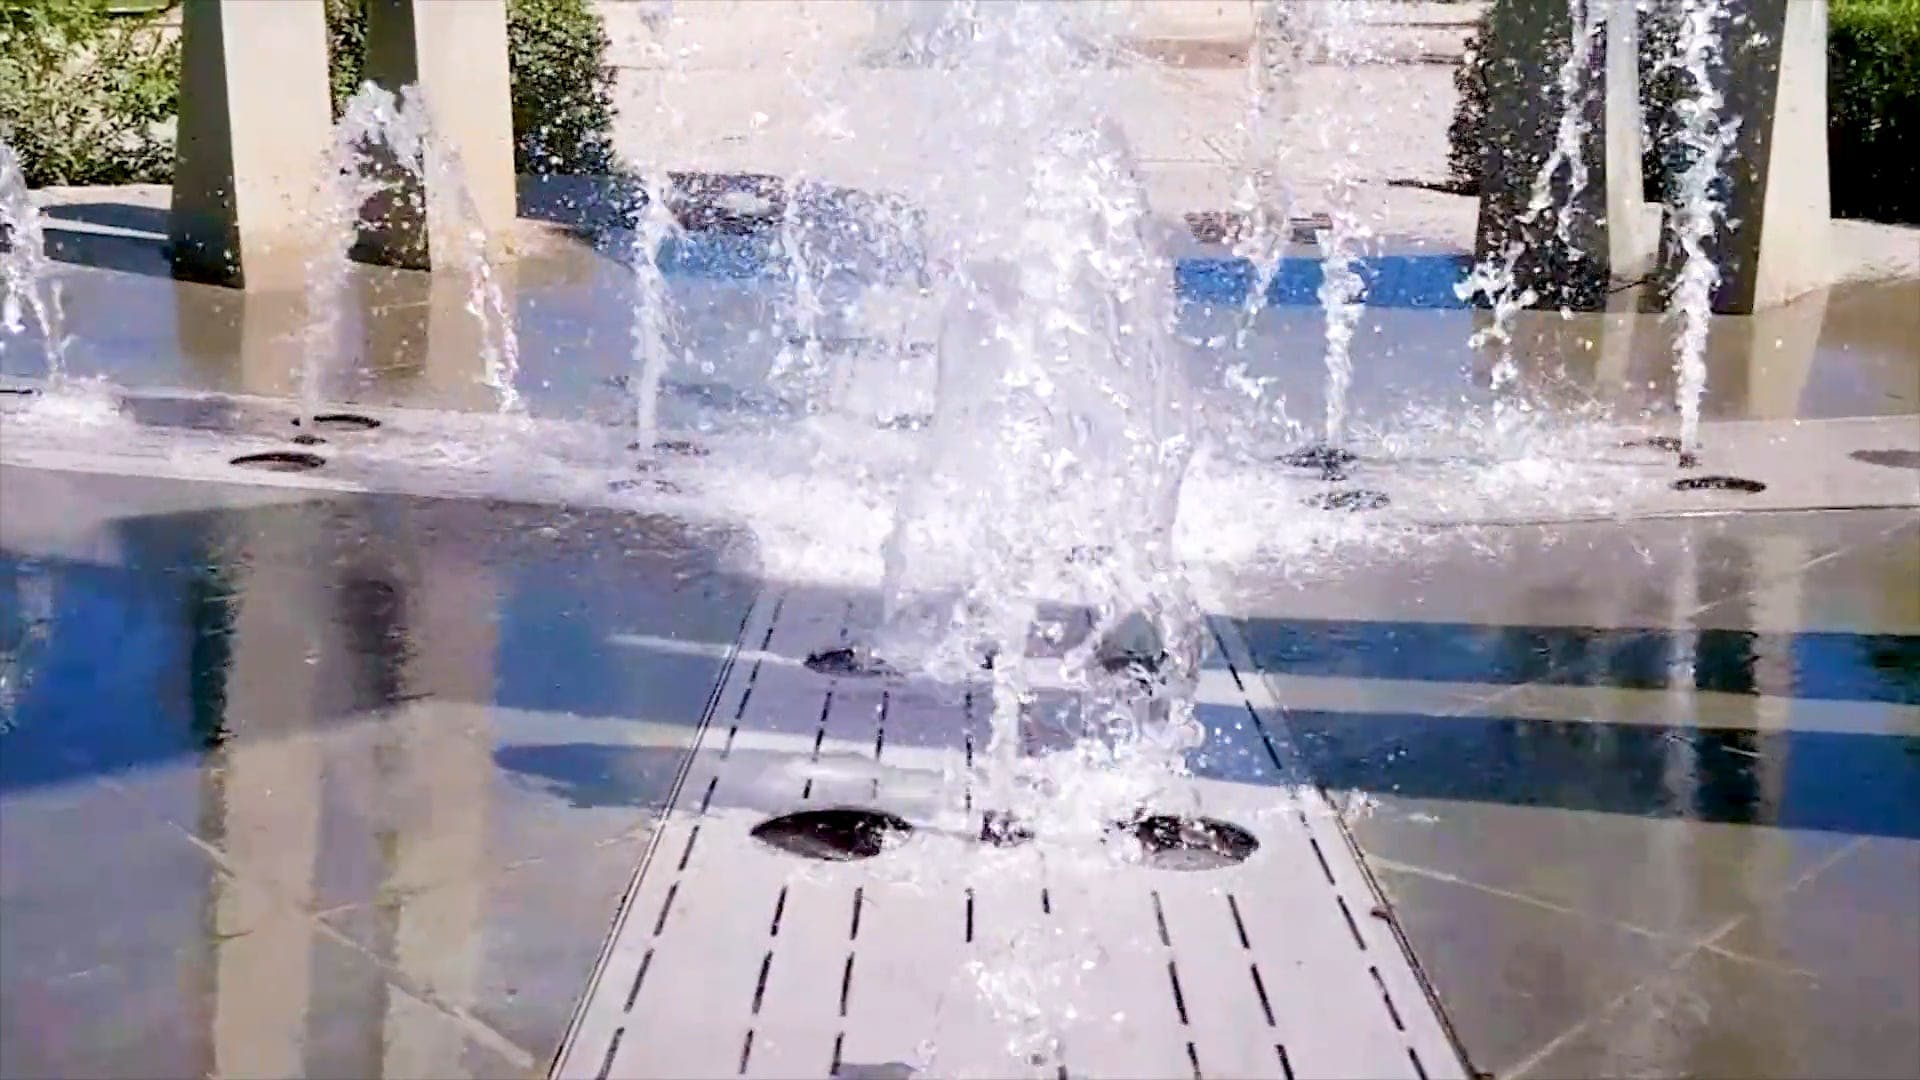 Water Fountain At A Park